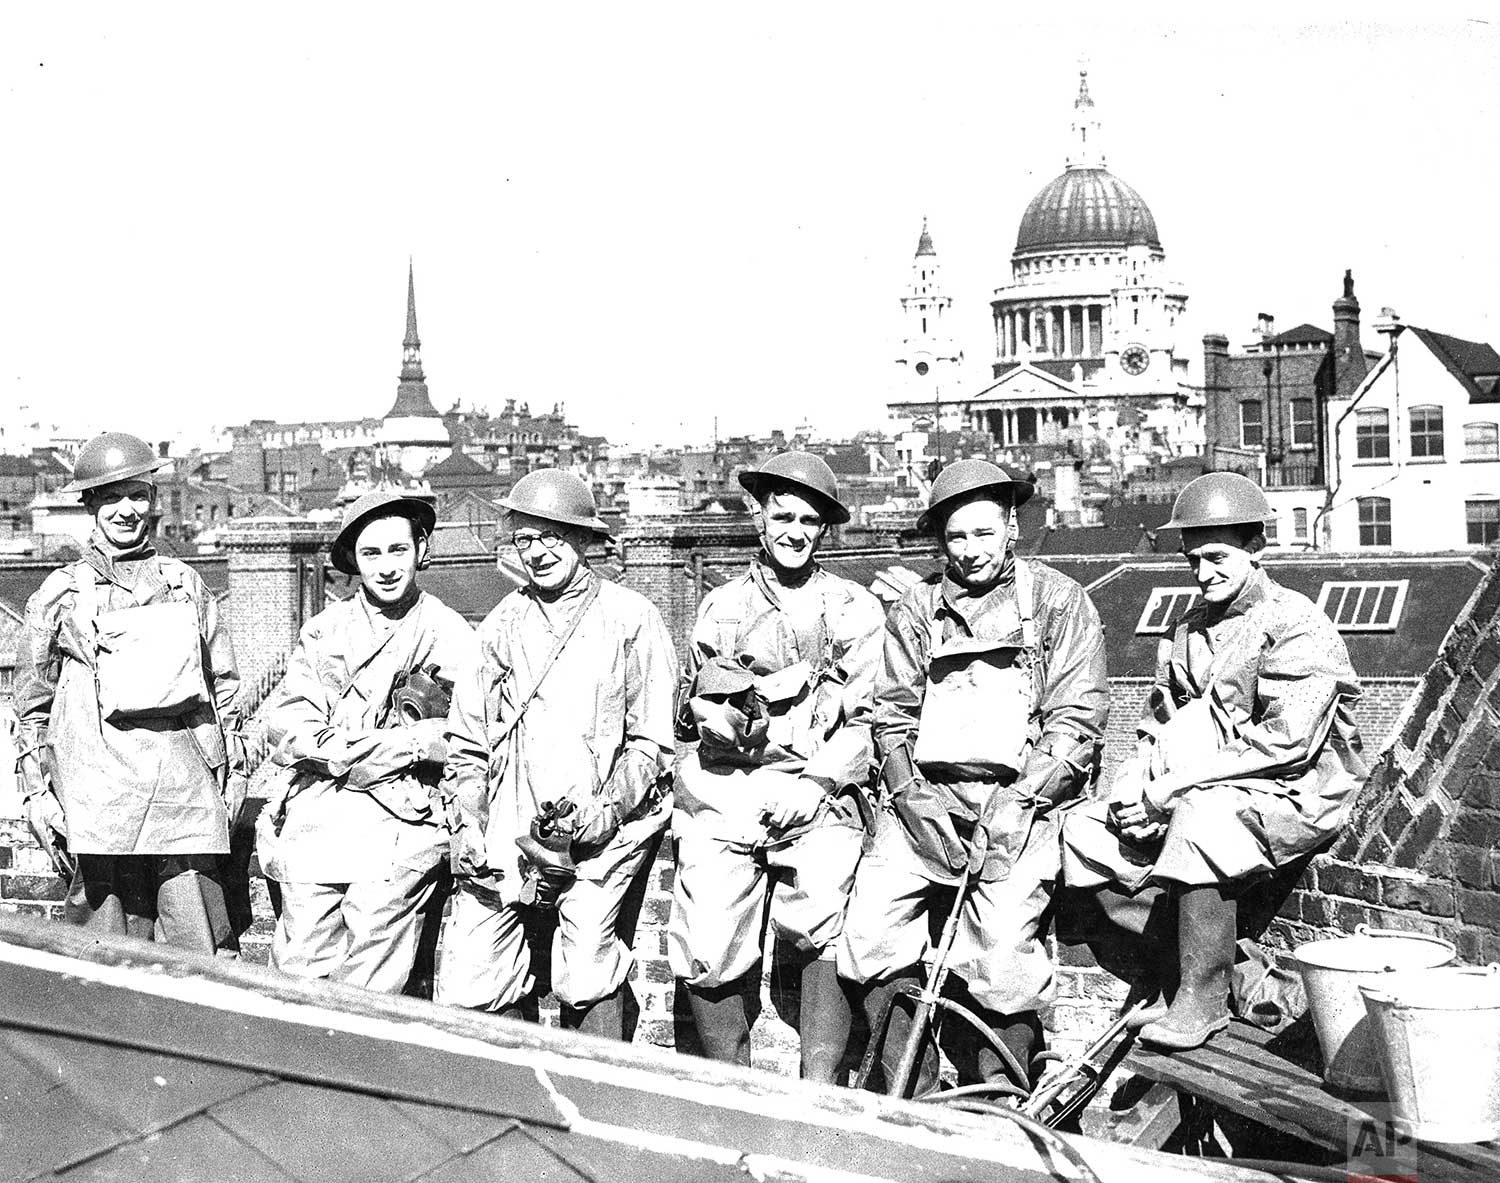 Members of the AP London staff have their own air raid protection squad and here they are shown going through their first full dress parade on May 16, 1940 on the roof of the Associated Press building. They are, left to right, I. A. Milligan, C. Michaels, K. C. Boxall, L. I. Jones, G. Selkirk and G. Angus. (AP Photo/Corporate Archives)